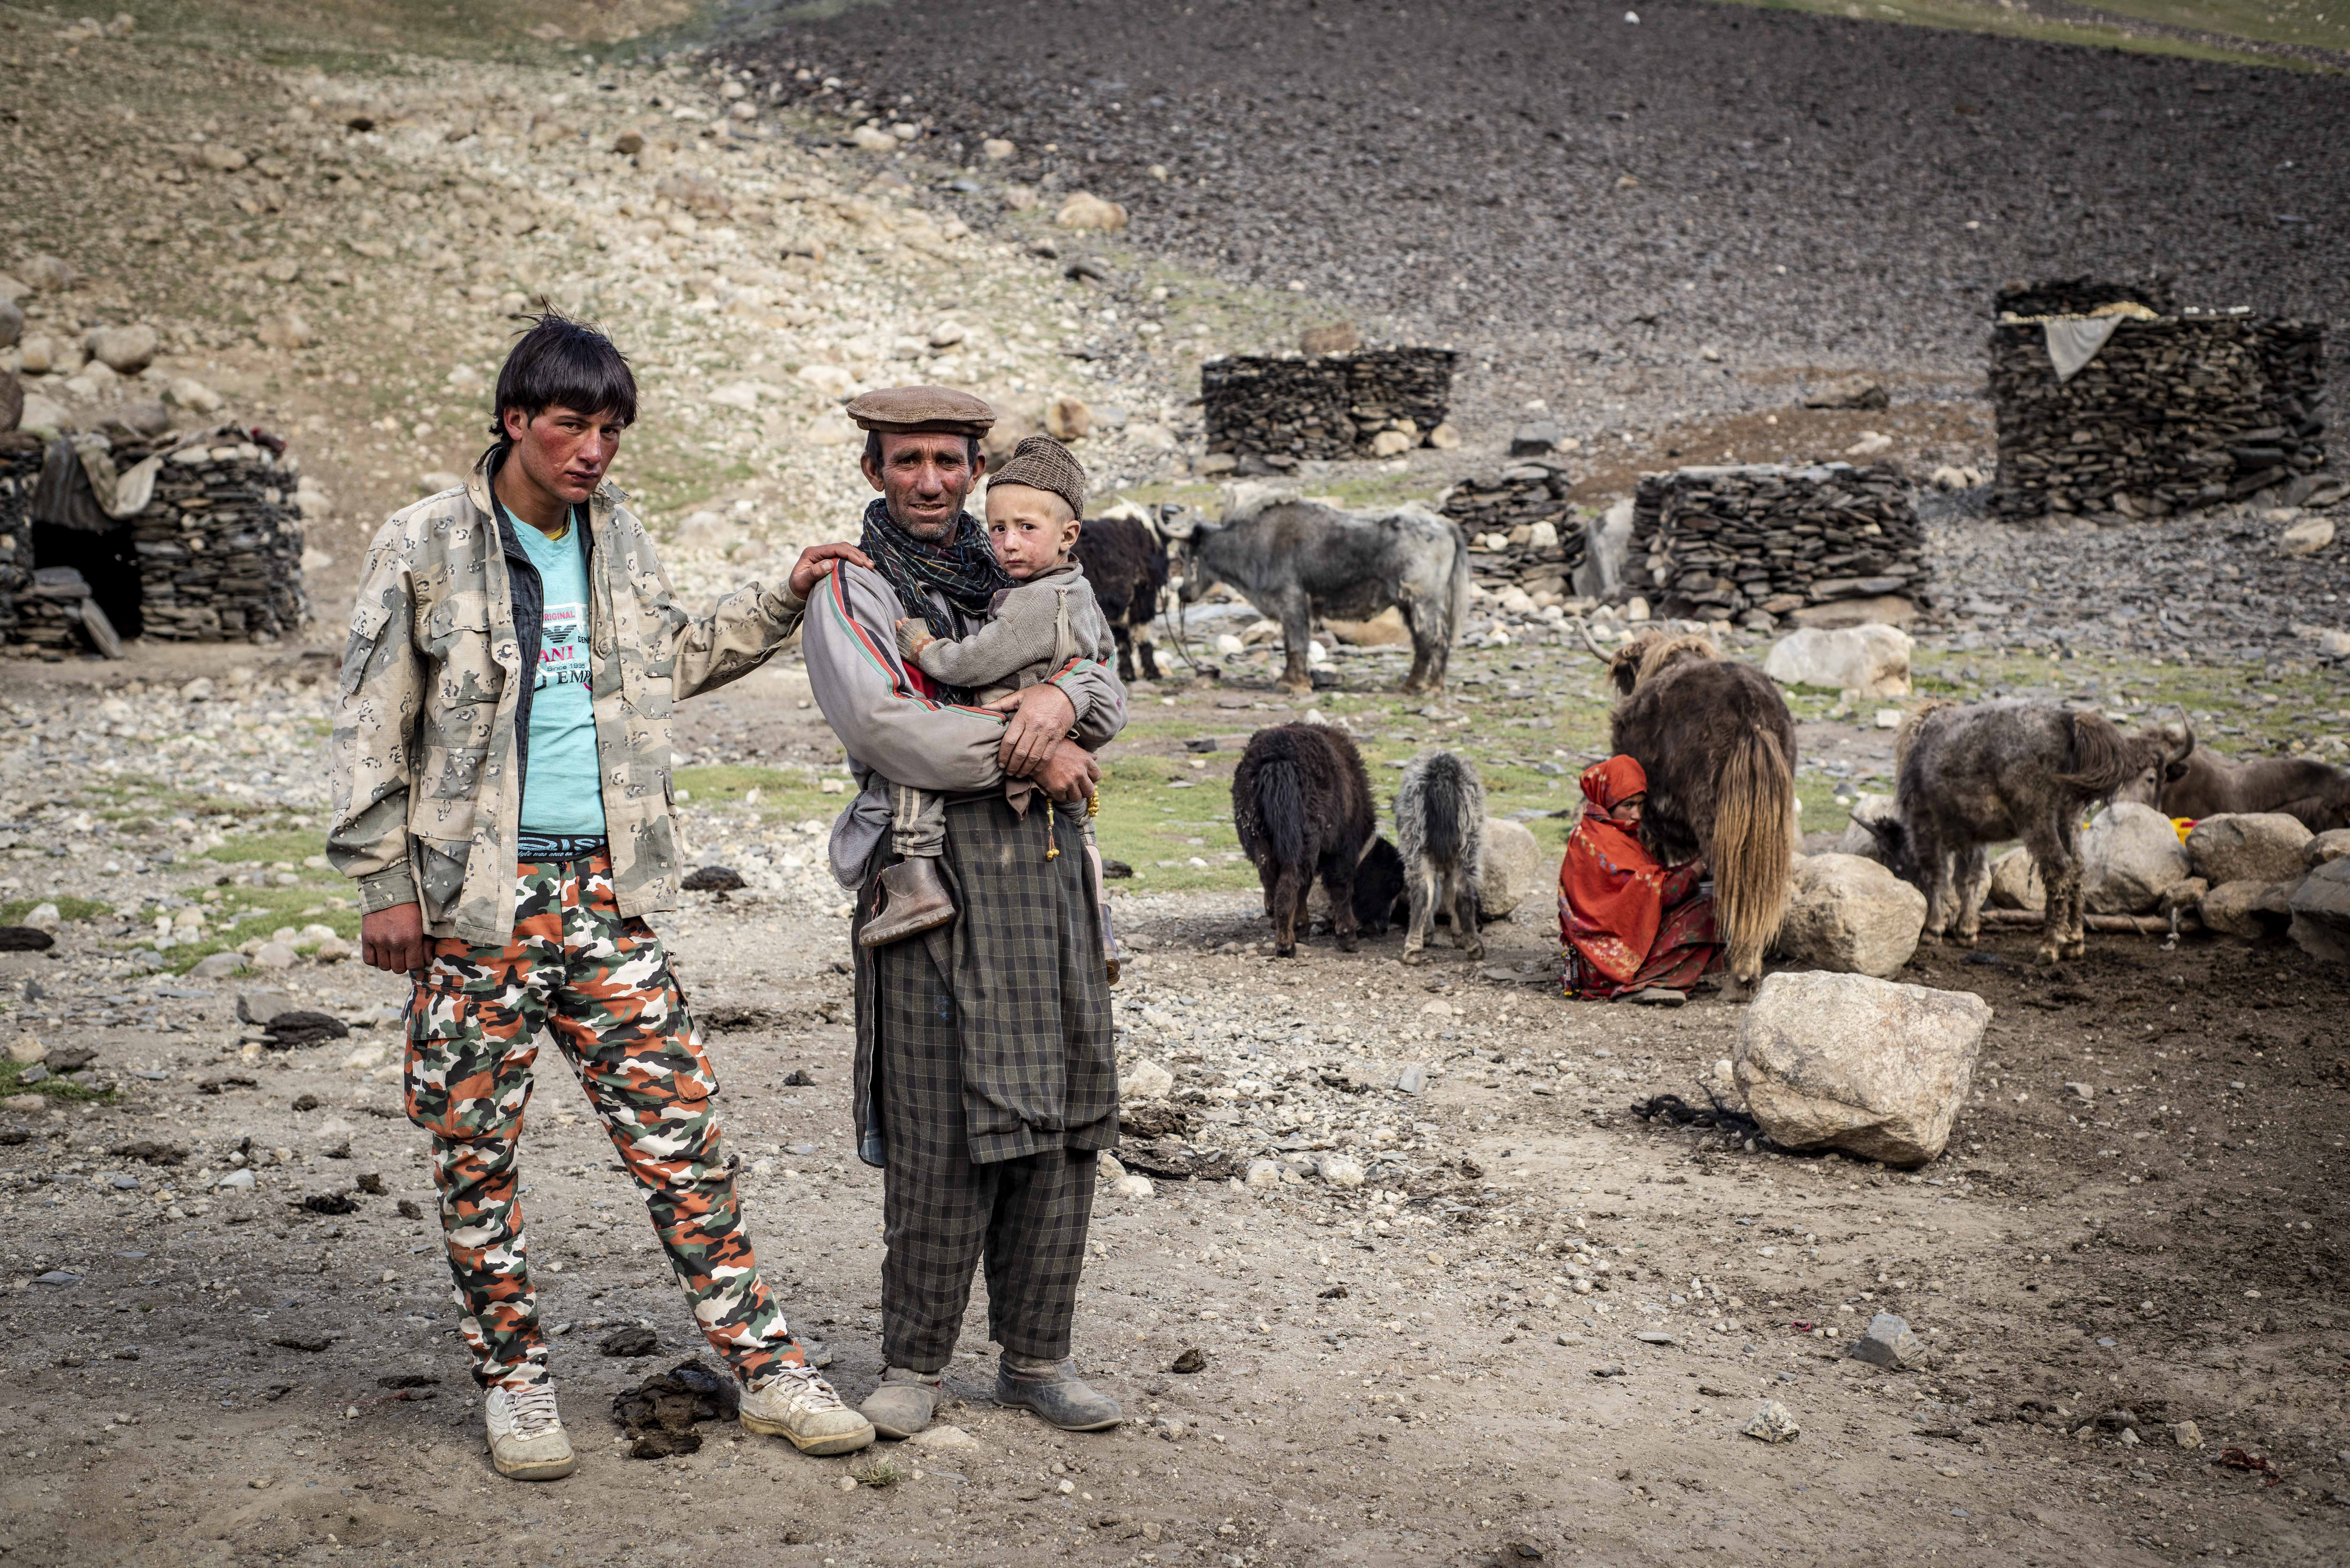 A Whaki family in Afghanistan